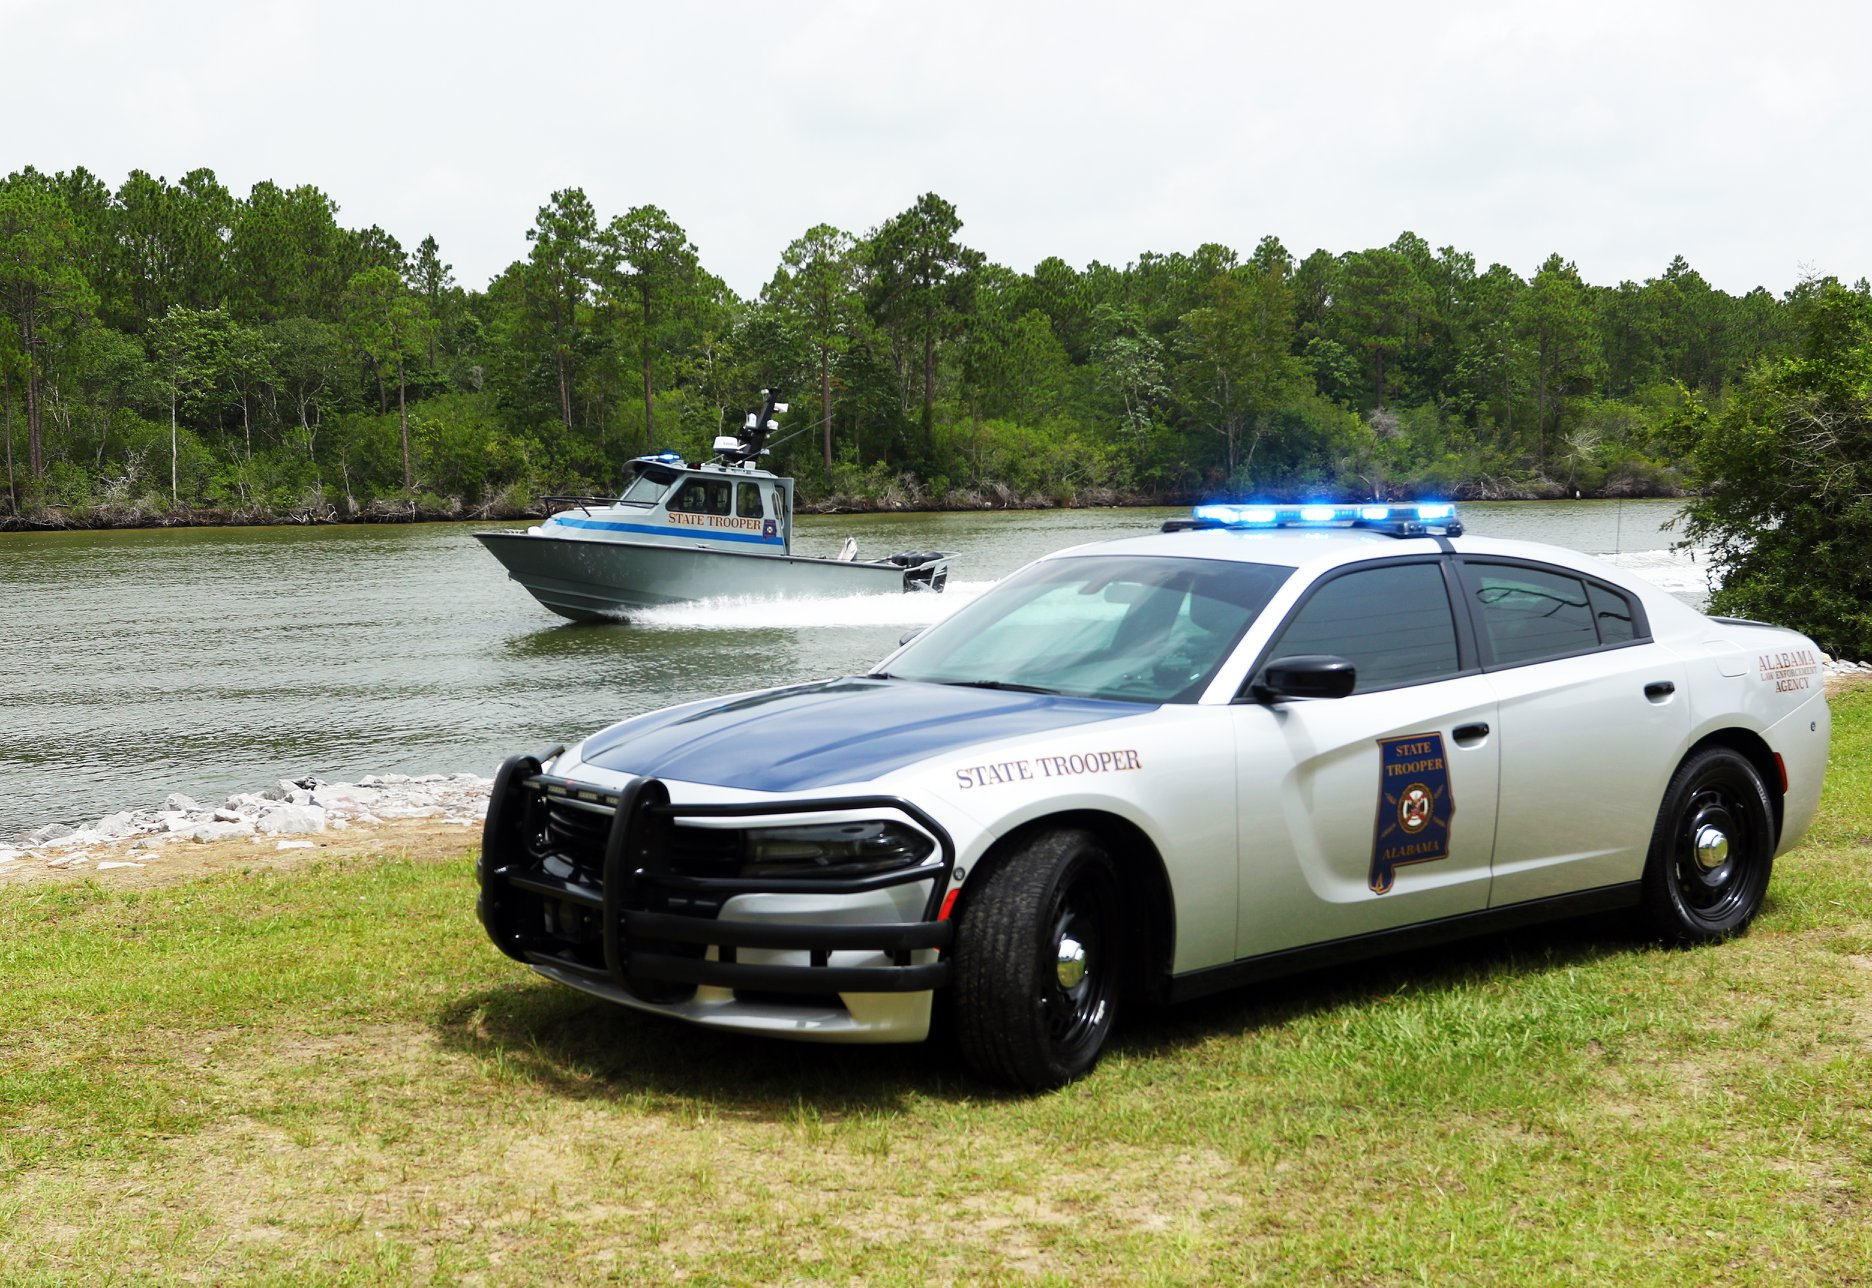 Alabama law enforcement reports lower-than-usual fatalities over Labor Day weekend